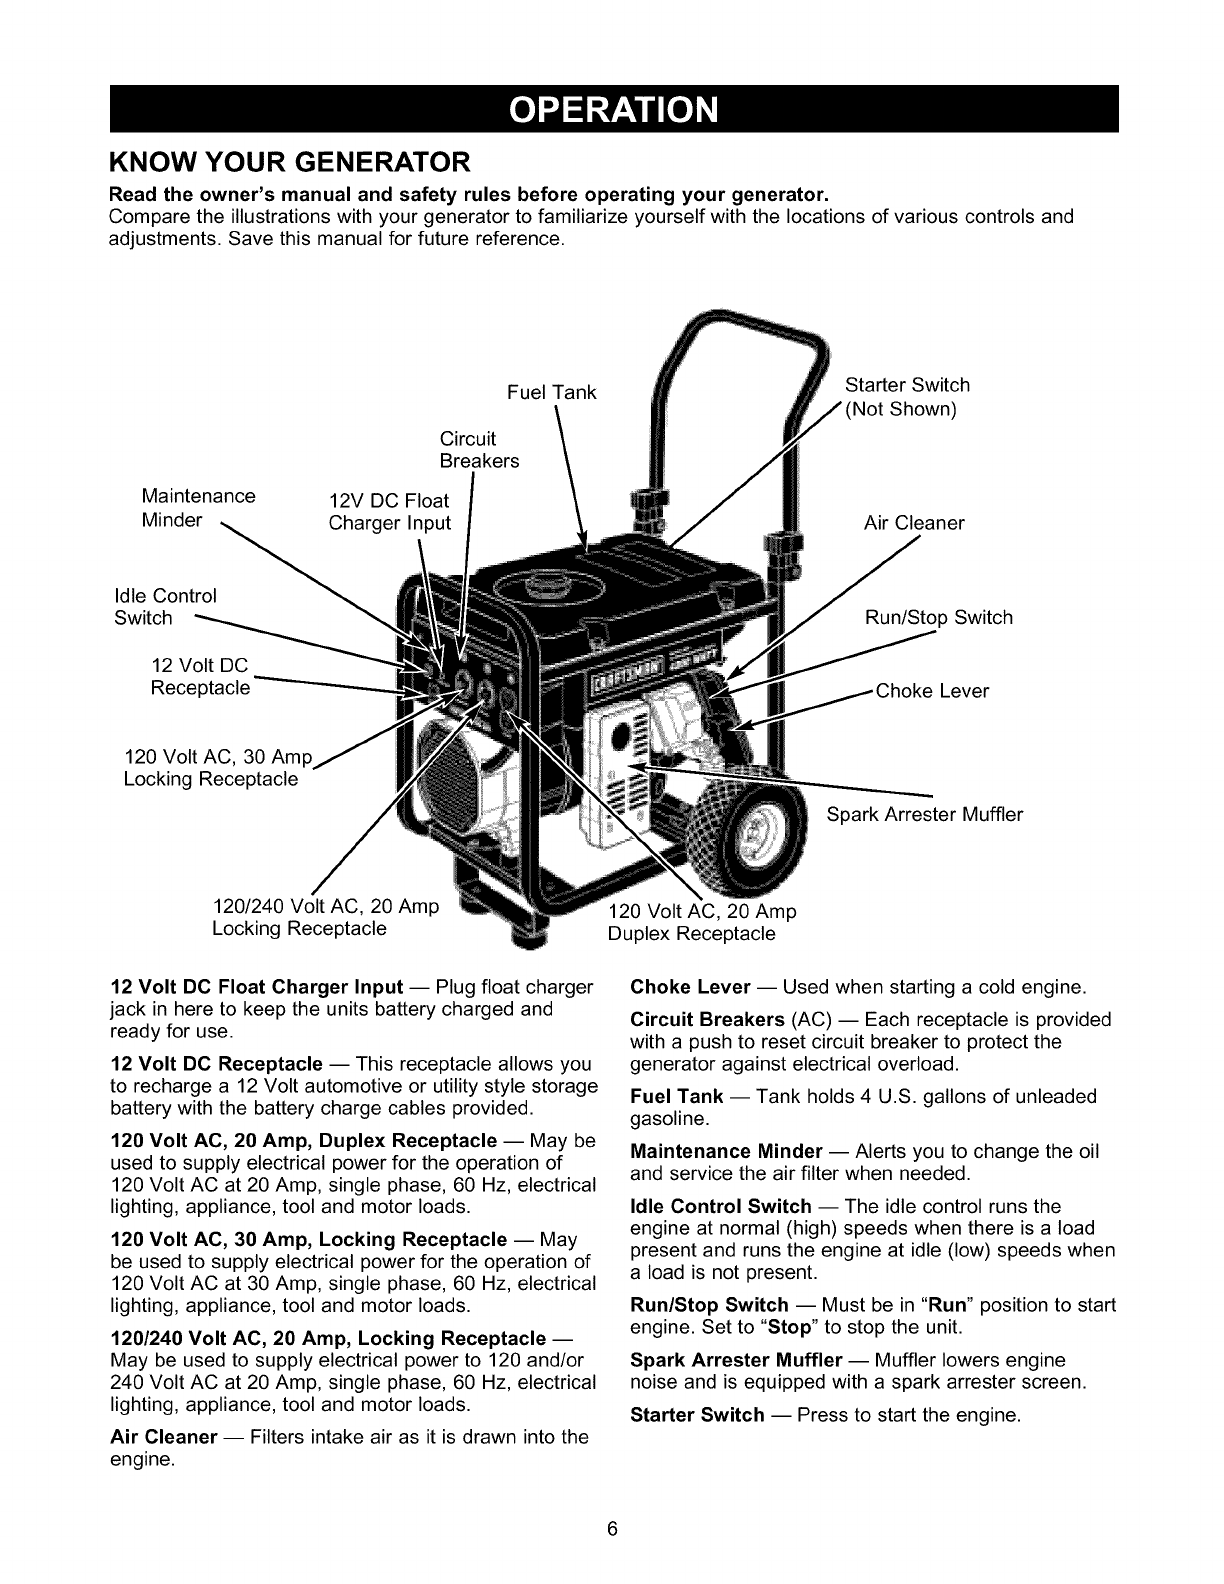 Craftsman User Manual Generator Manuals And